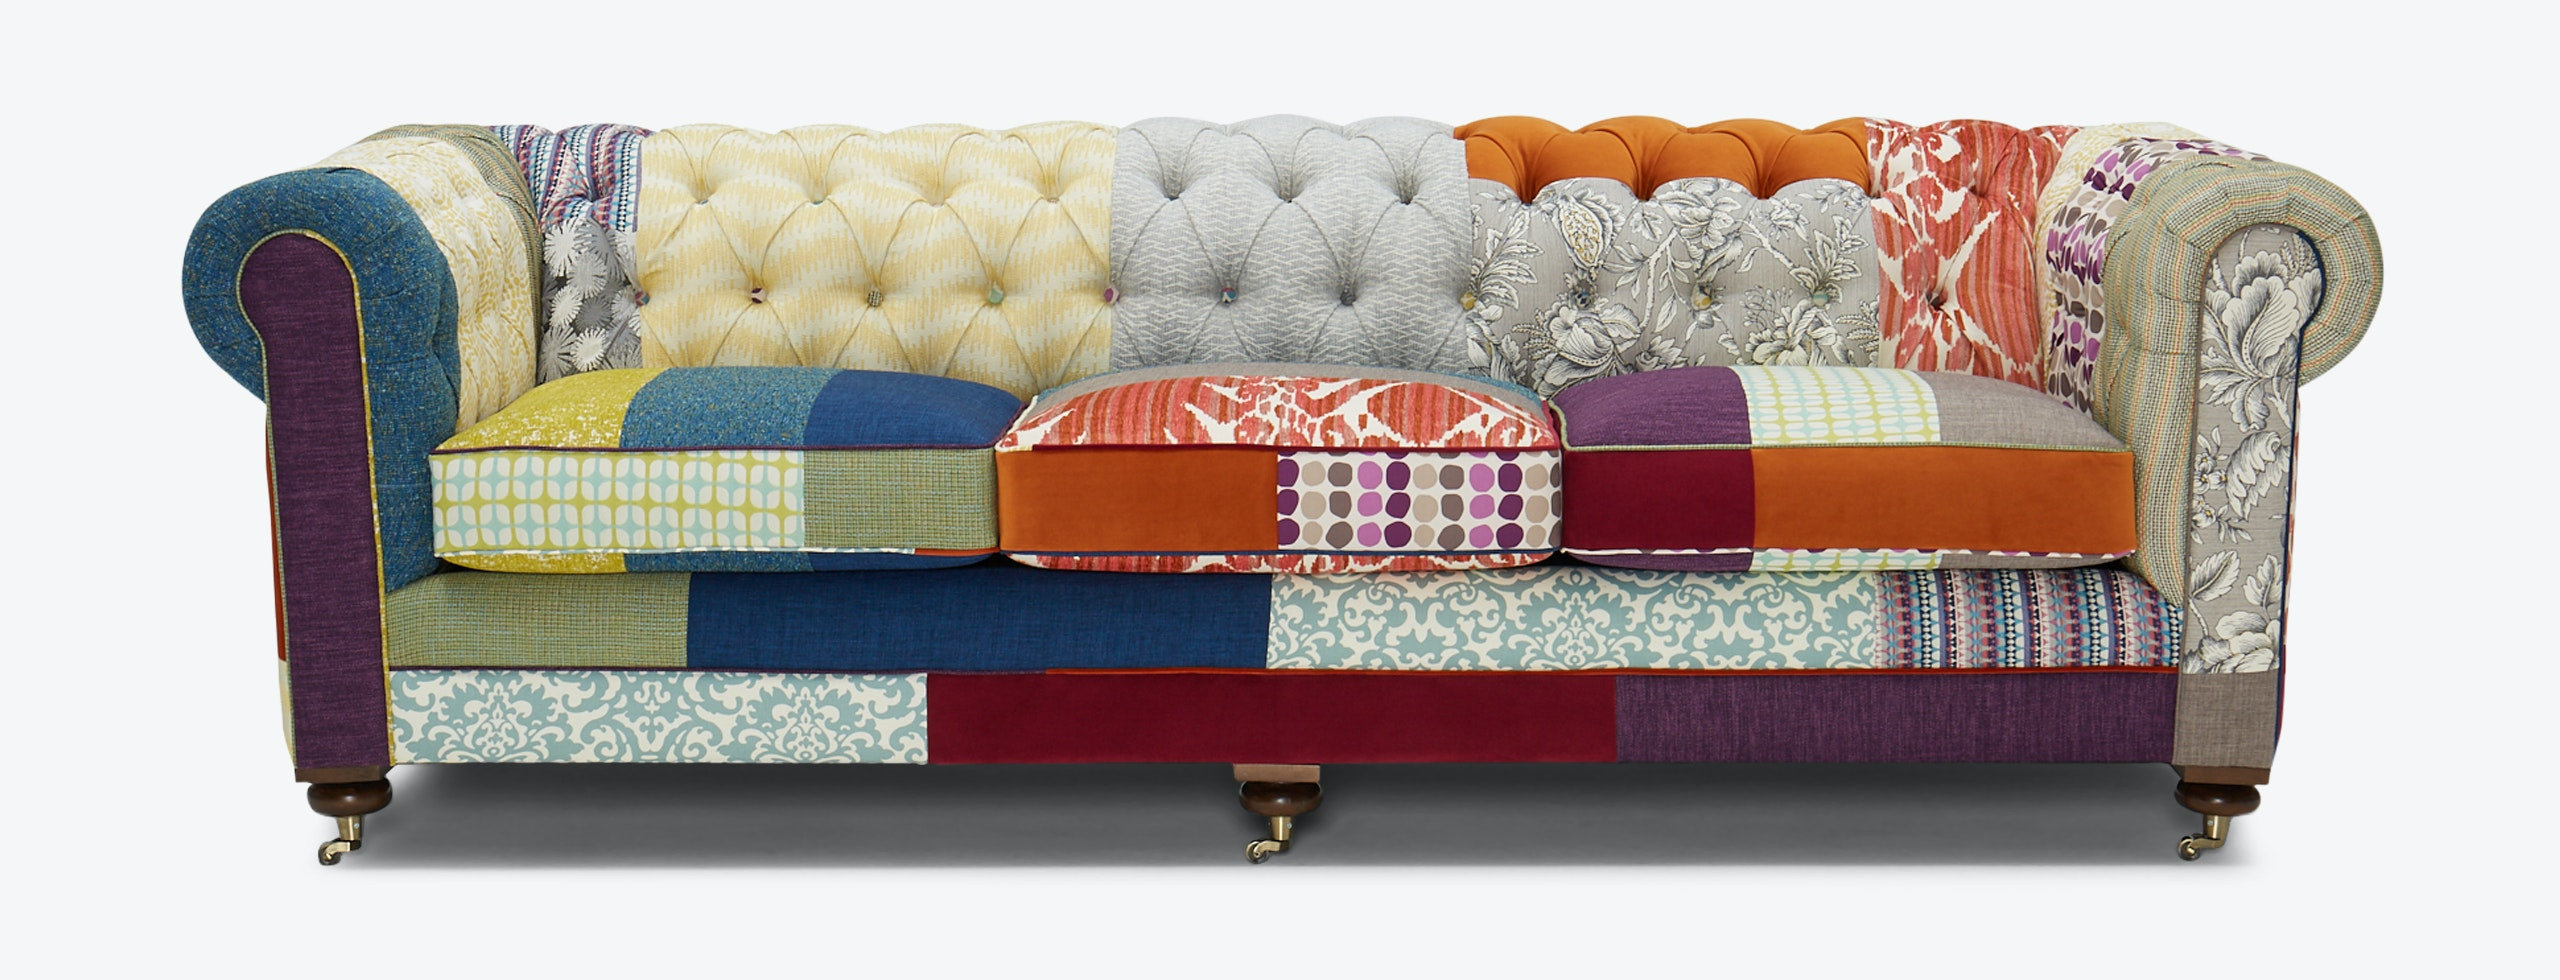 Patchwork Sofa Liam Patchwork Sofa Brooklyn Edition Joybird